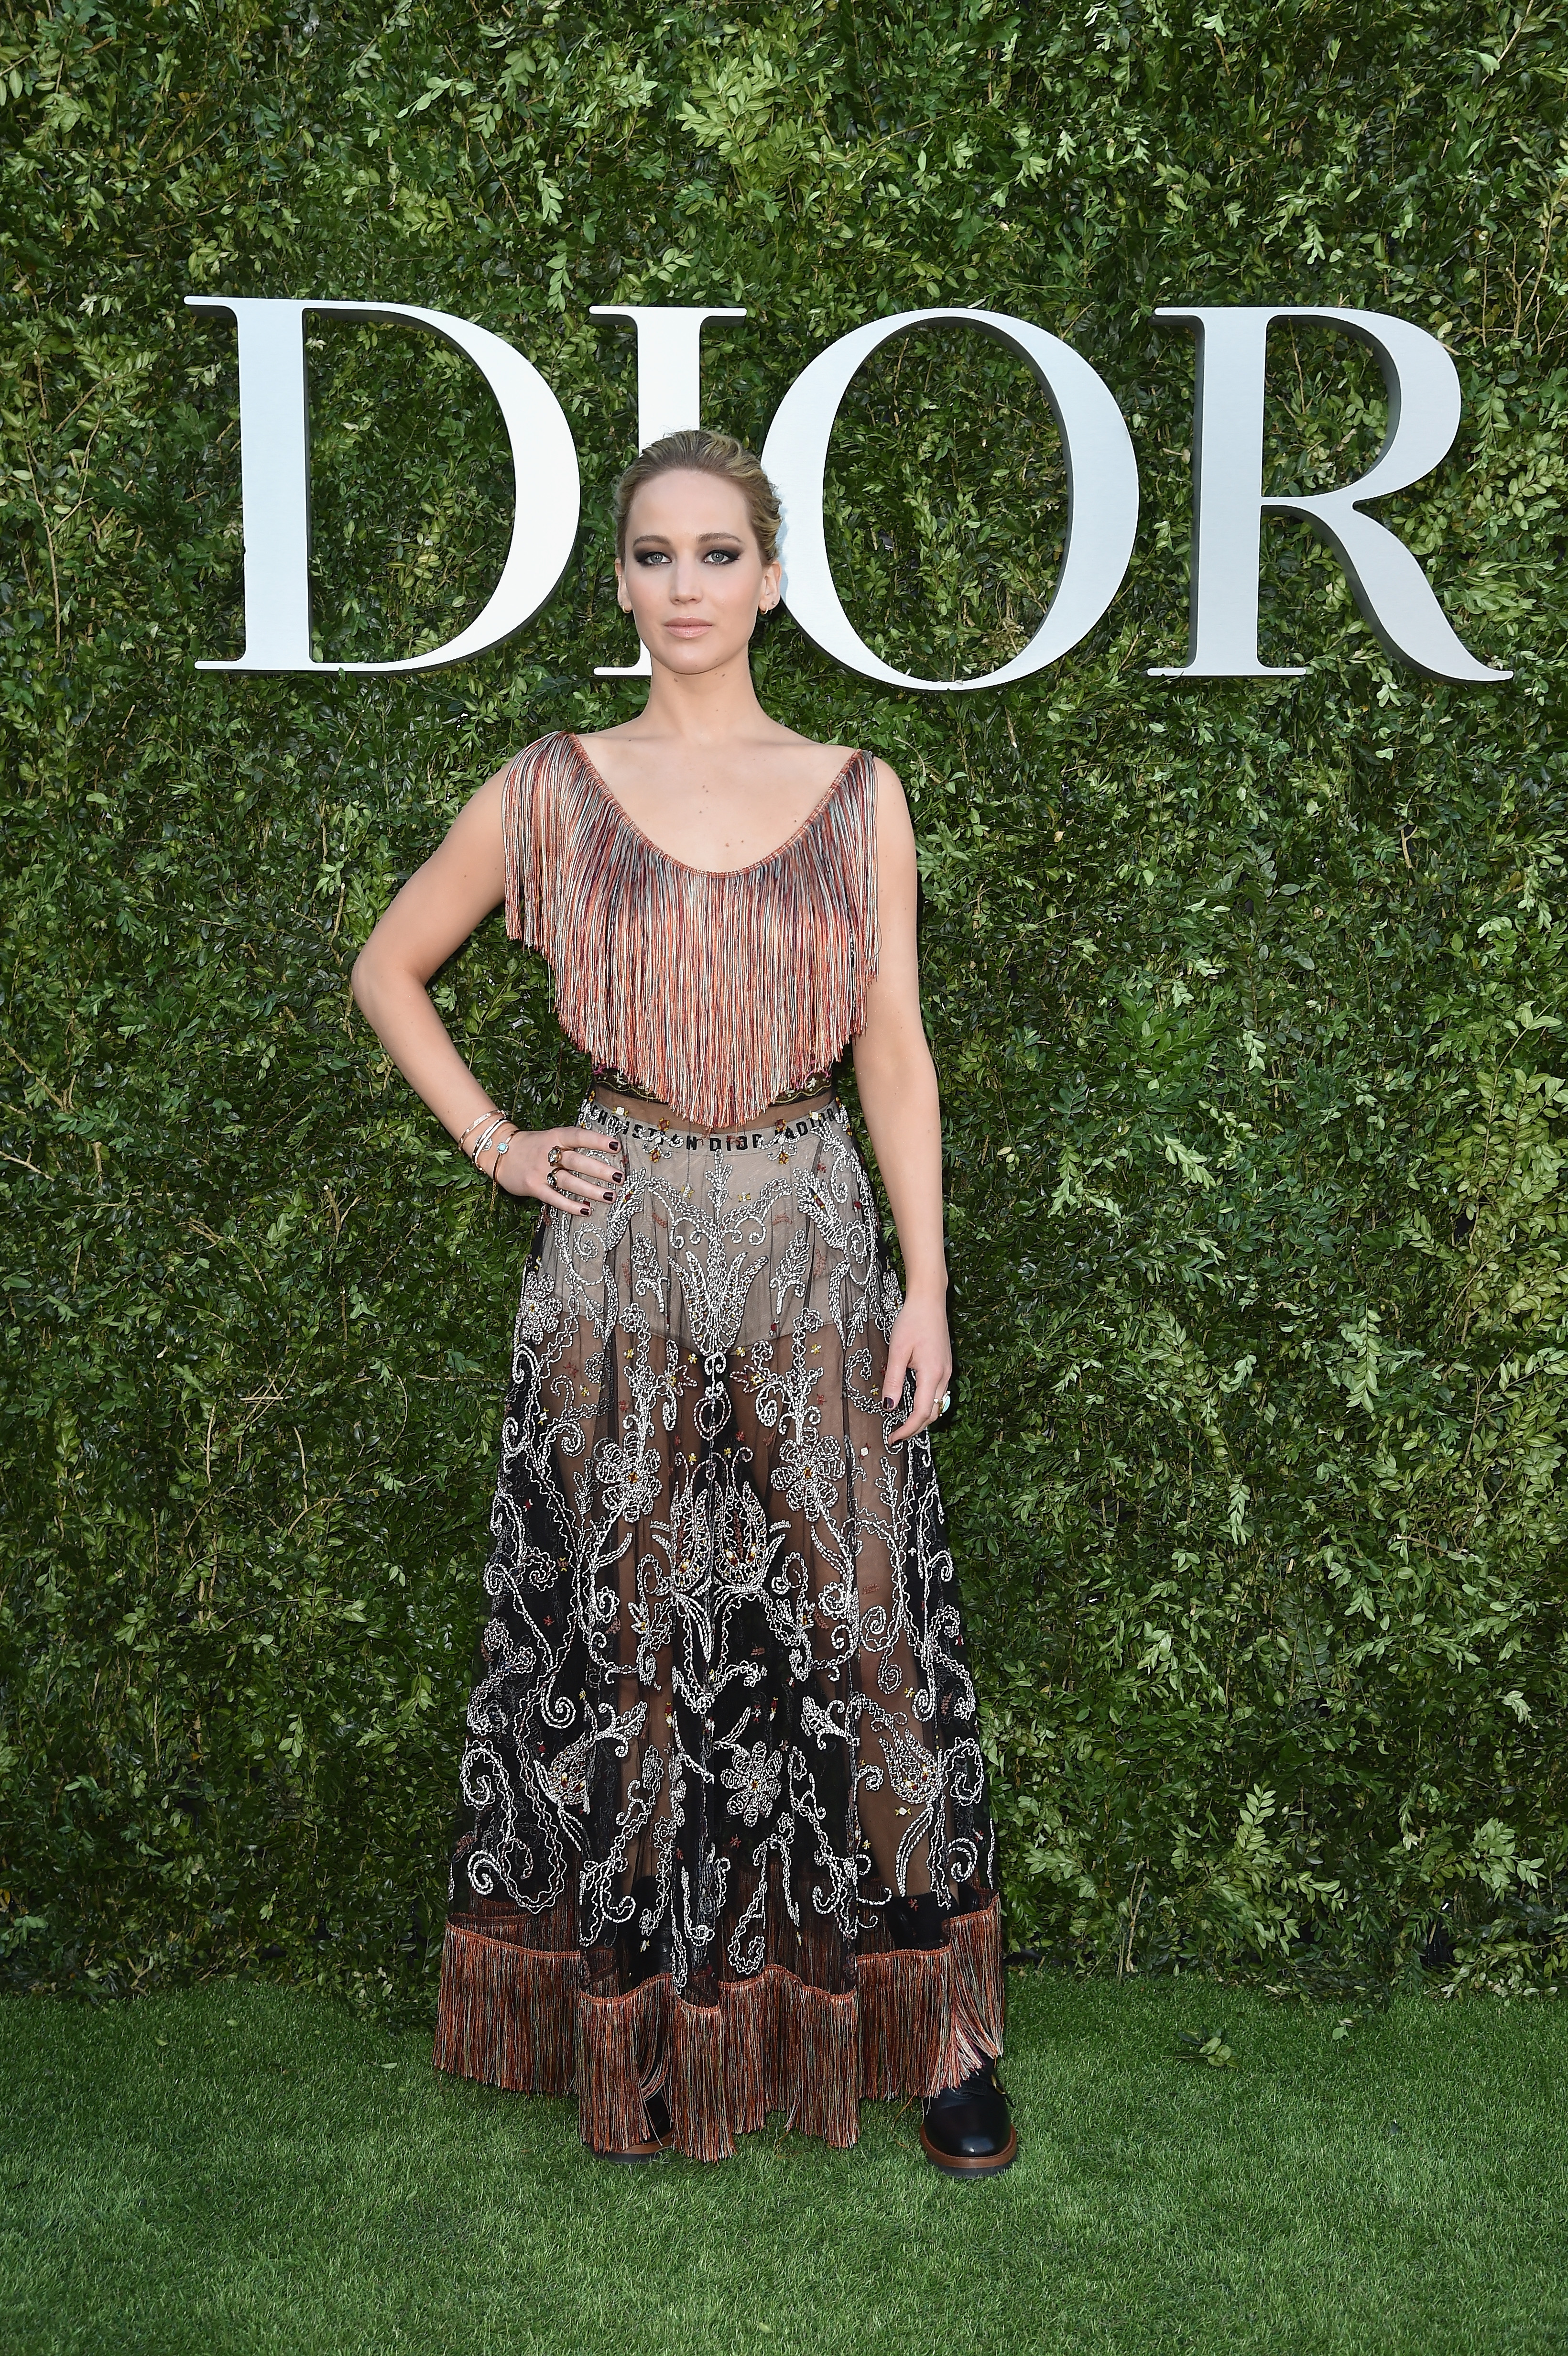 PARIS, FRANCE - JULY 03: Jennifer Lawrence attends 'Christian Dior, couturier du reve' Exhibition Launch celebrating 70 years of creation  at Musee Des Arts Decoratifs on July 3, 2017 in Paris, France.  (Photo by Jacopo Raule/Getty Images for Christian Dior) *** Local Caption *** Jennifer Lawrence